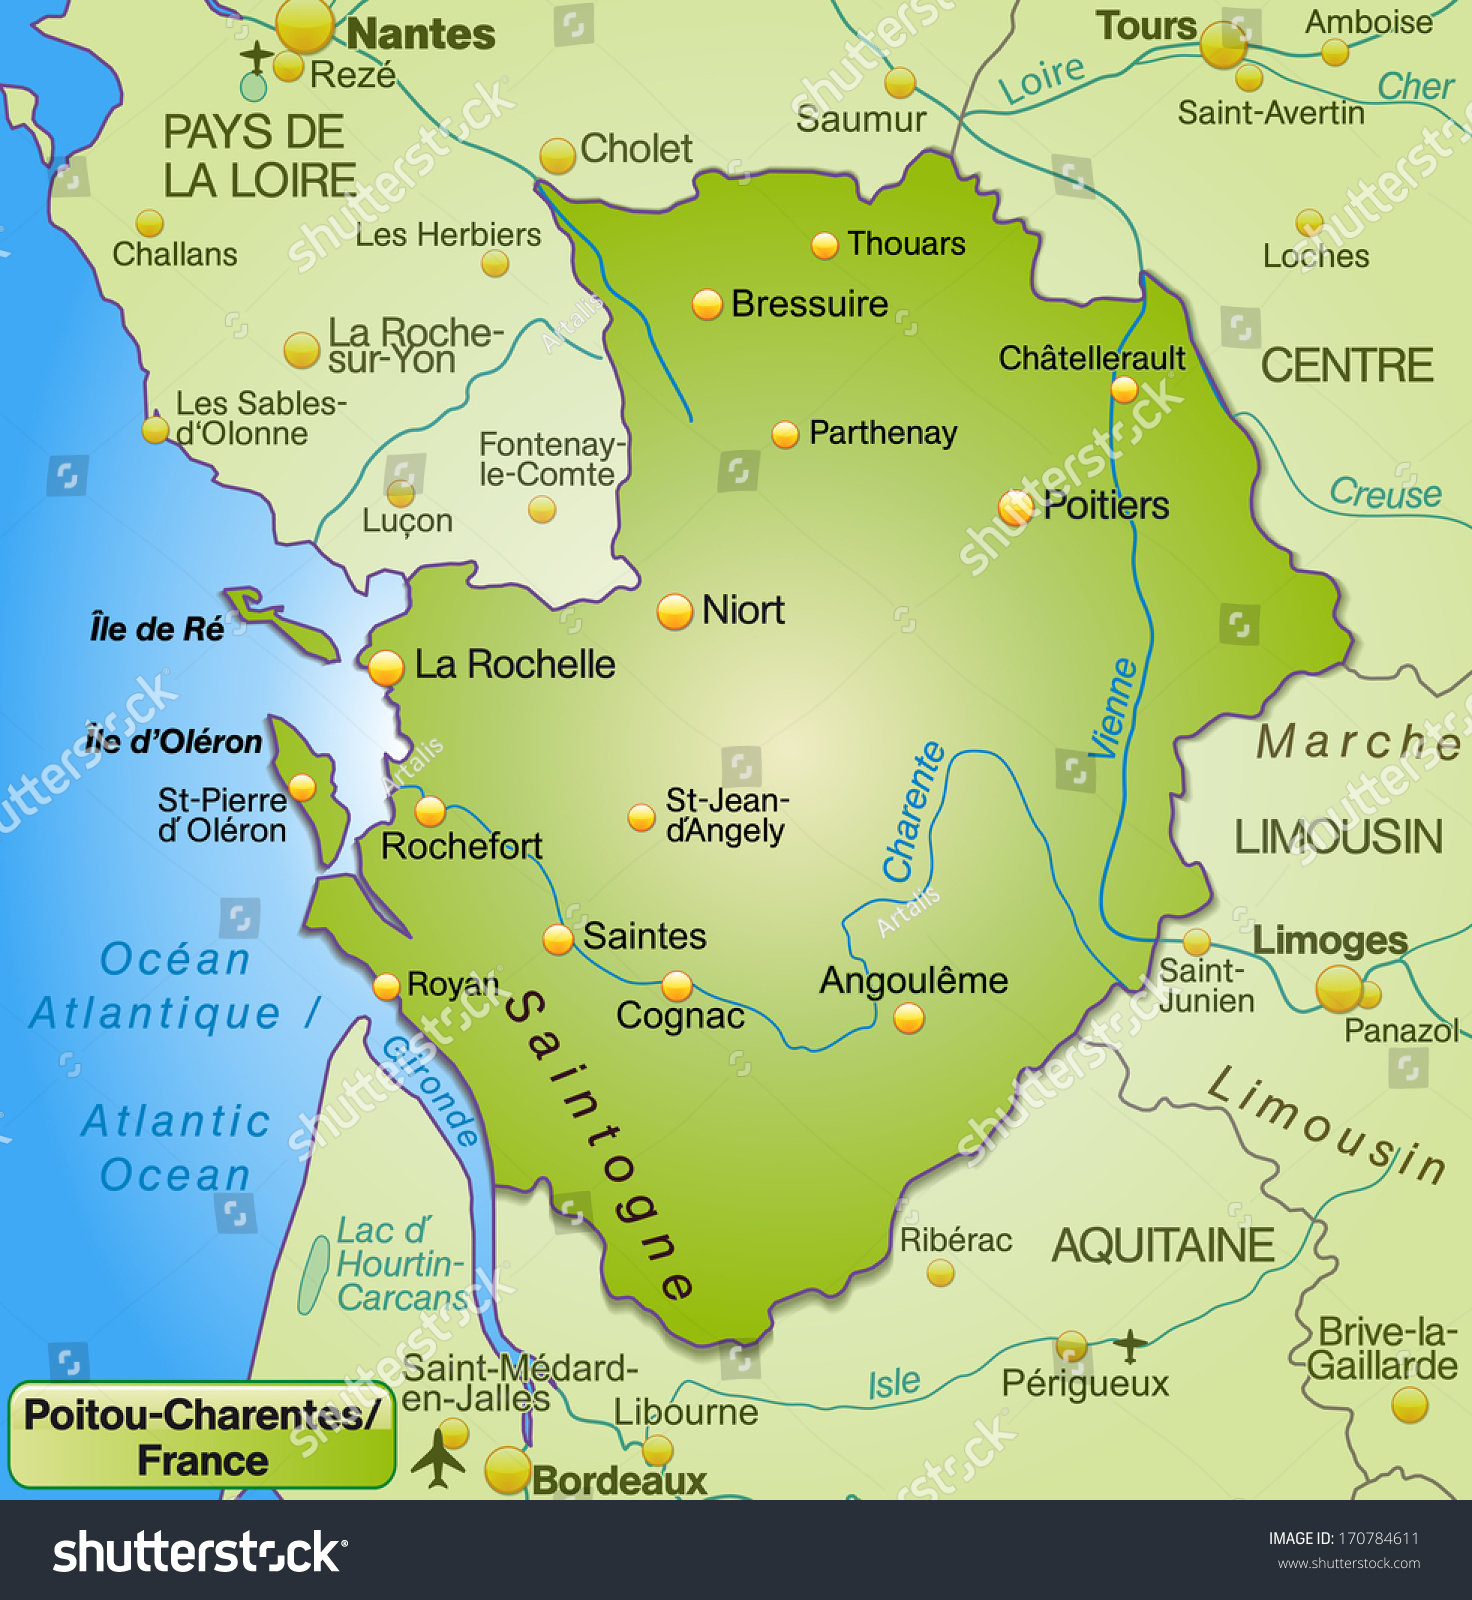 Map of Poitou-Charentes as an overview map in green | EZ Canvas